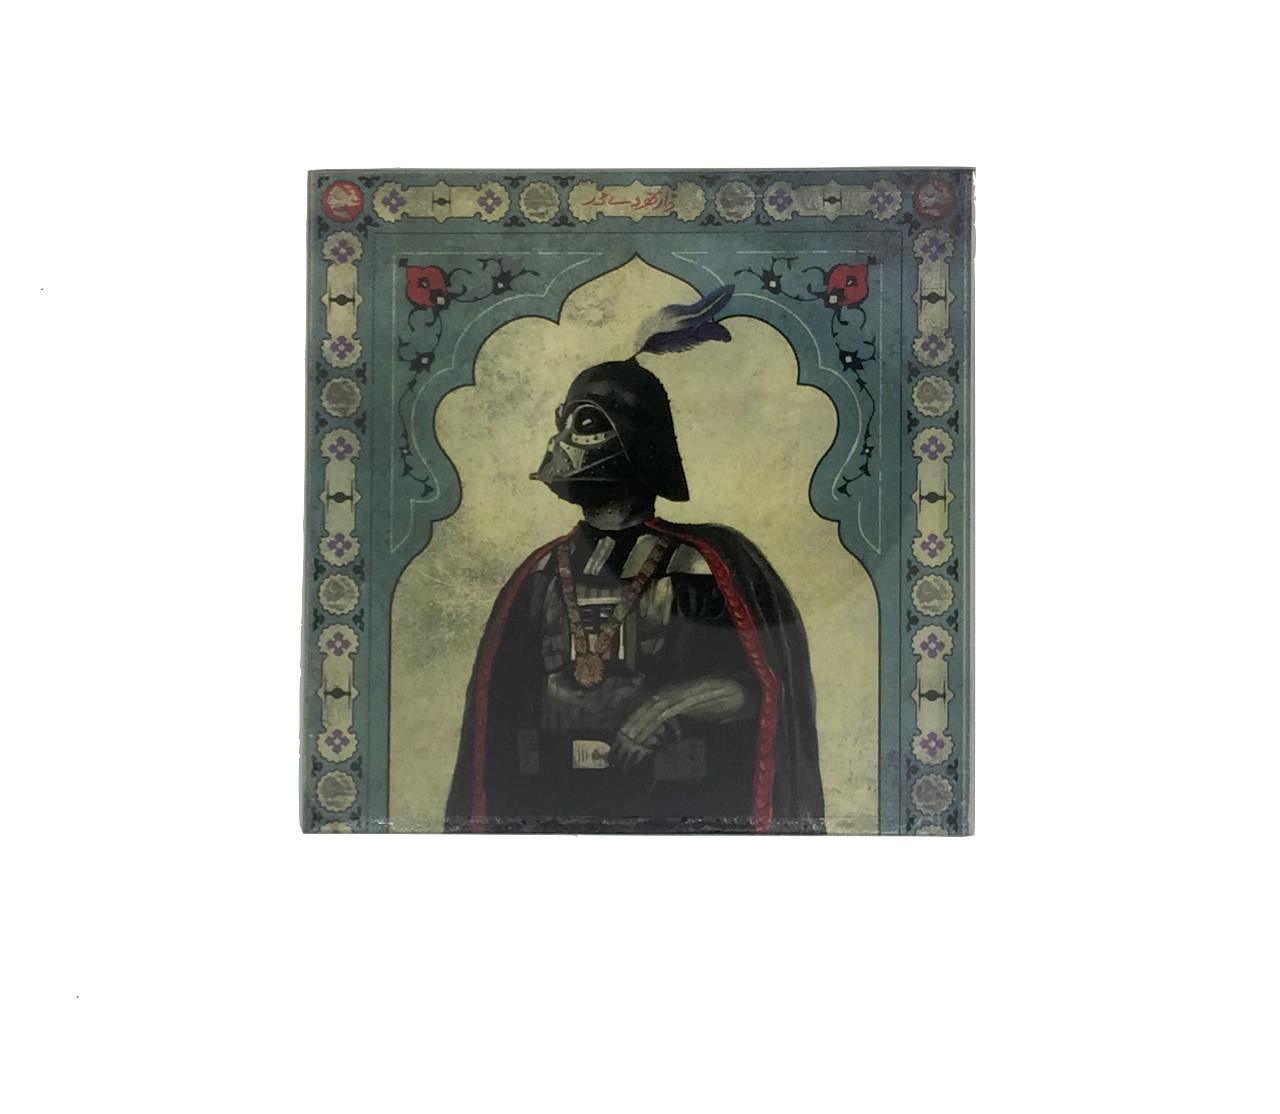 Star Wars Mughal Square Coaster- Darth Vader